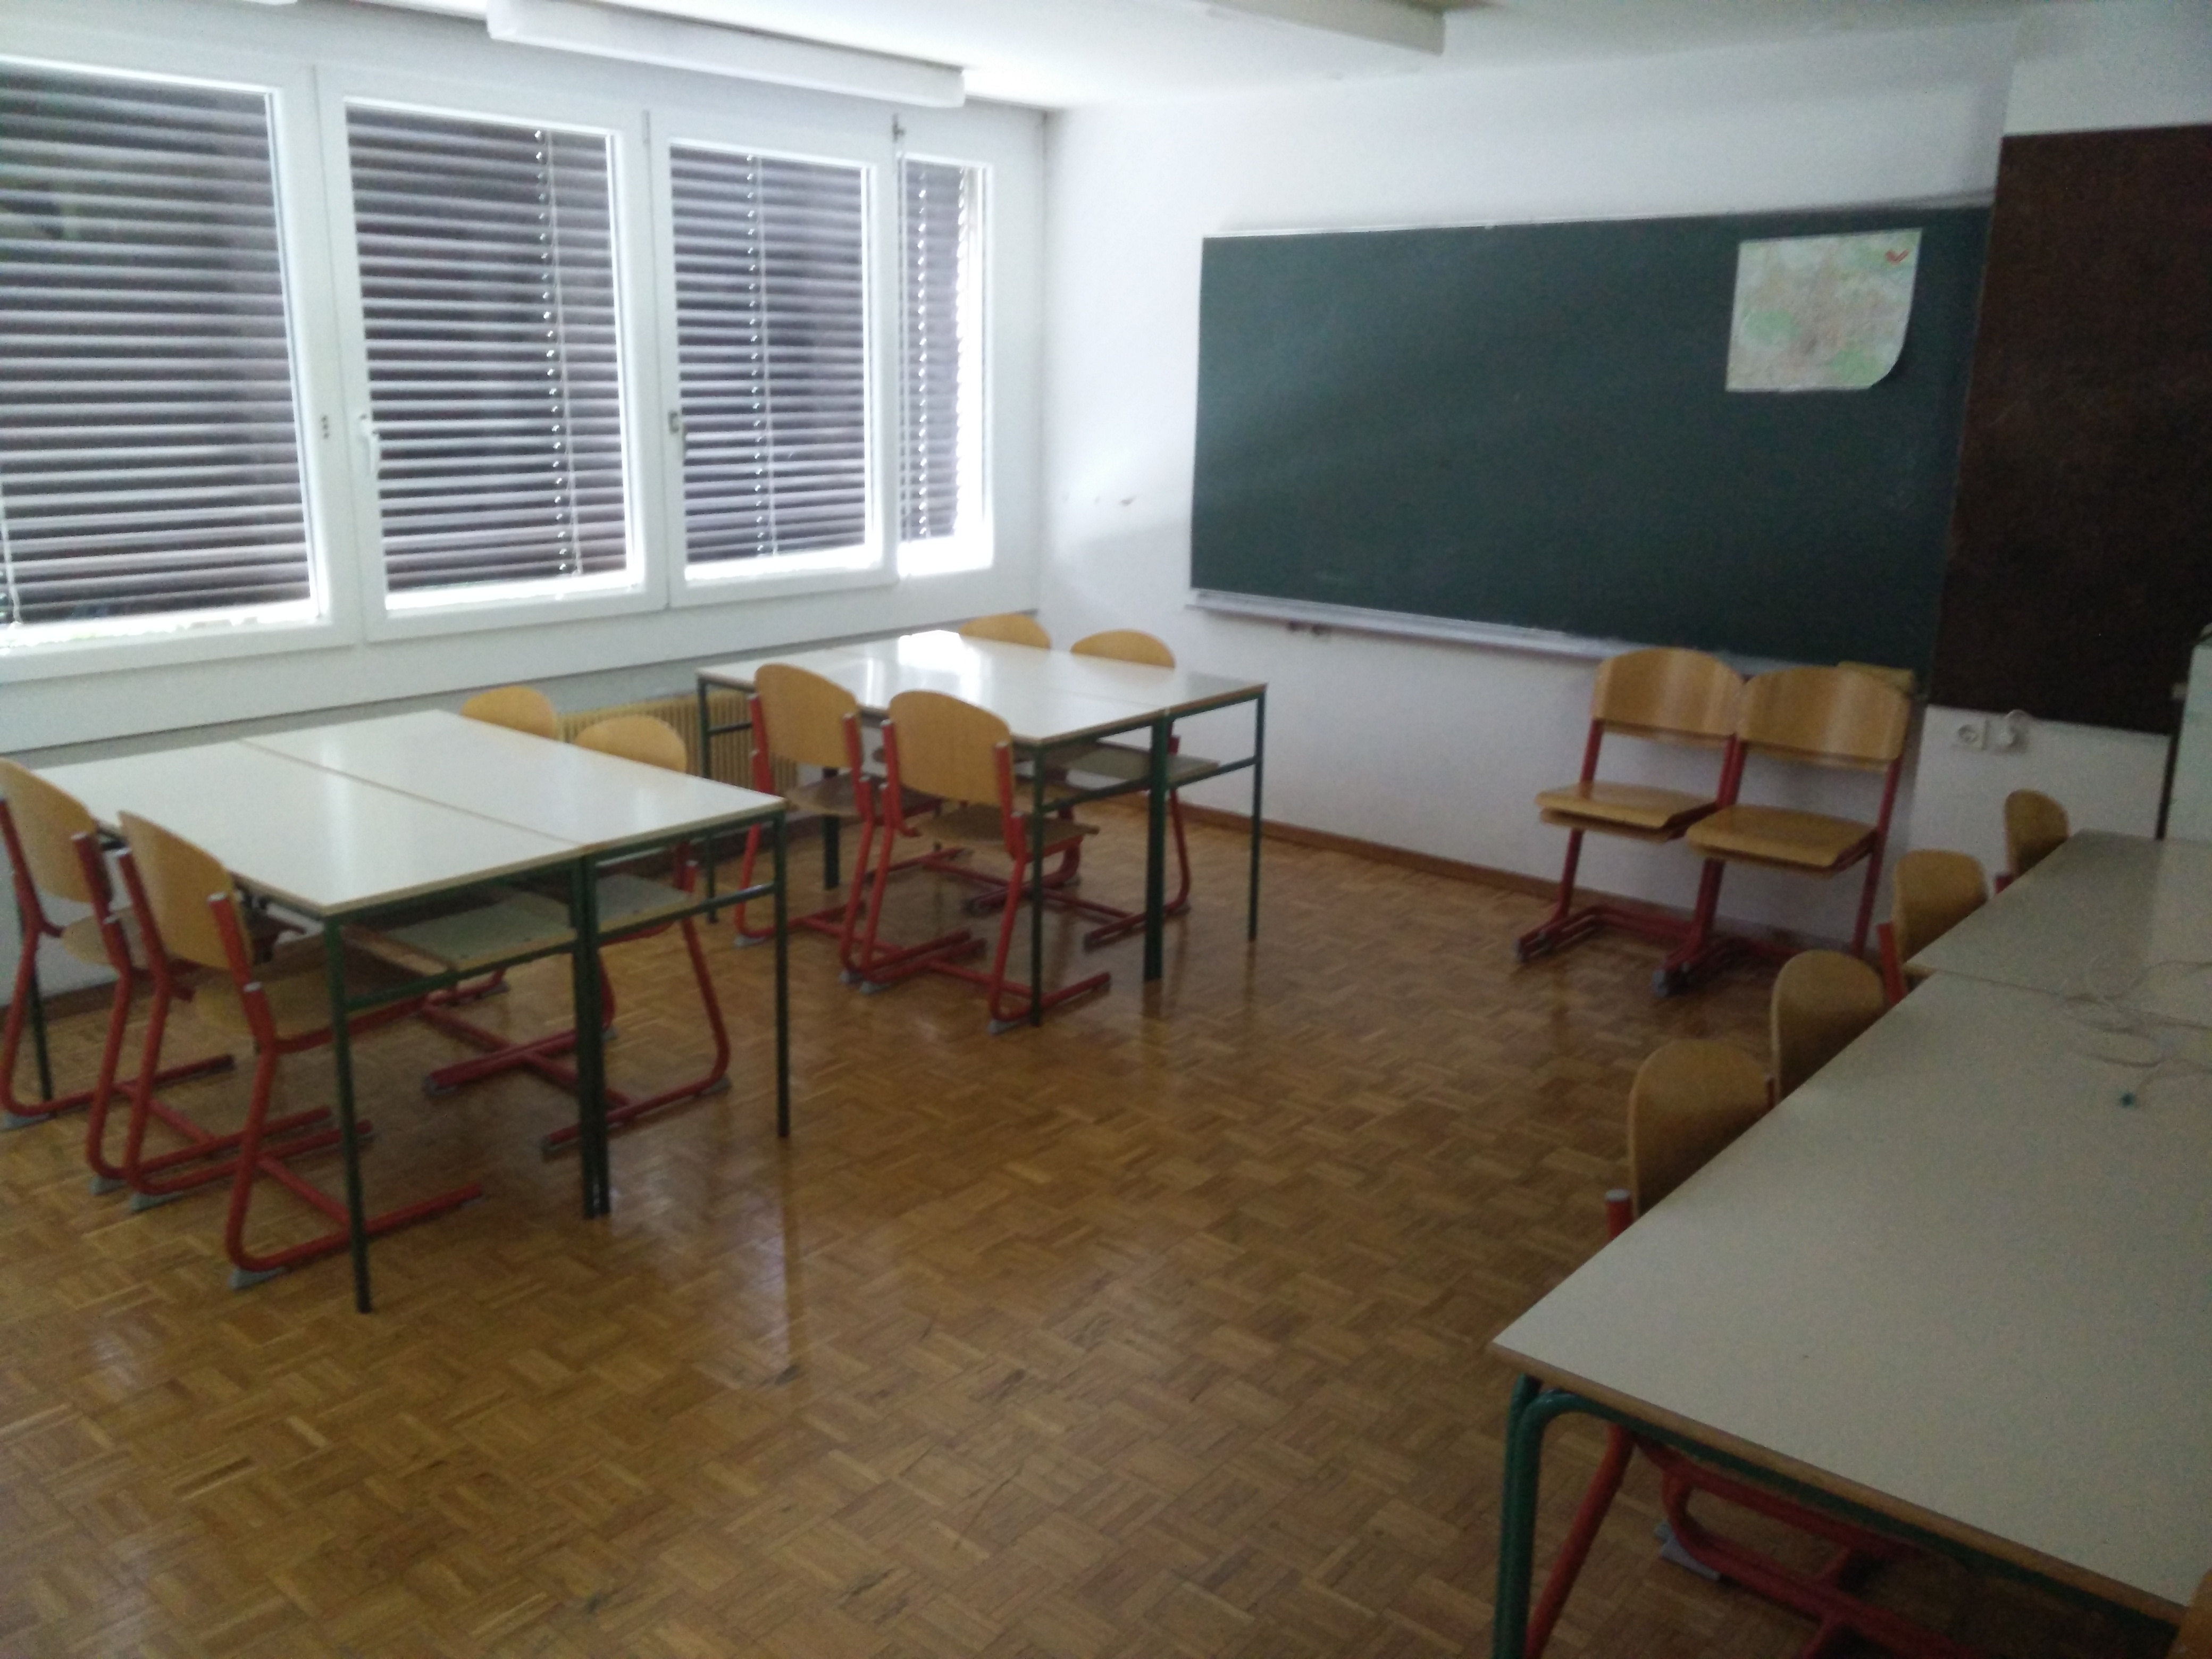 Small classroom on every floor.